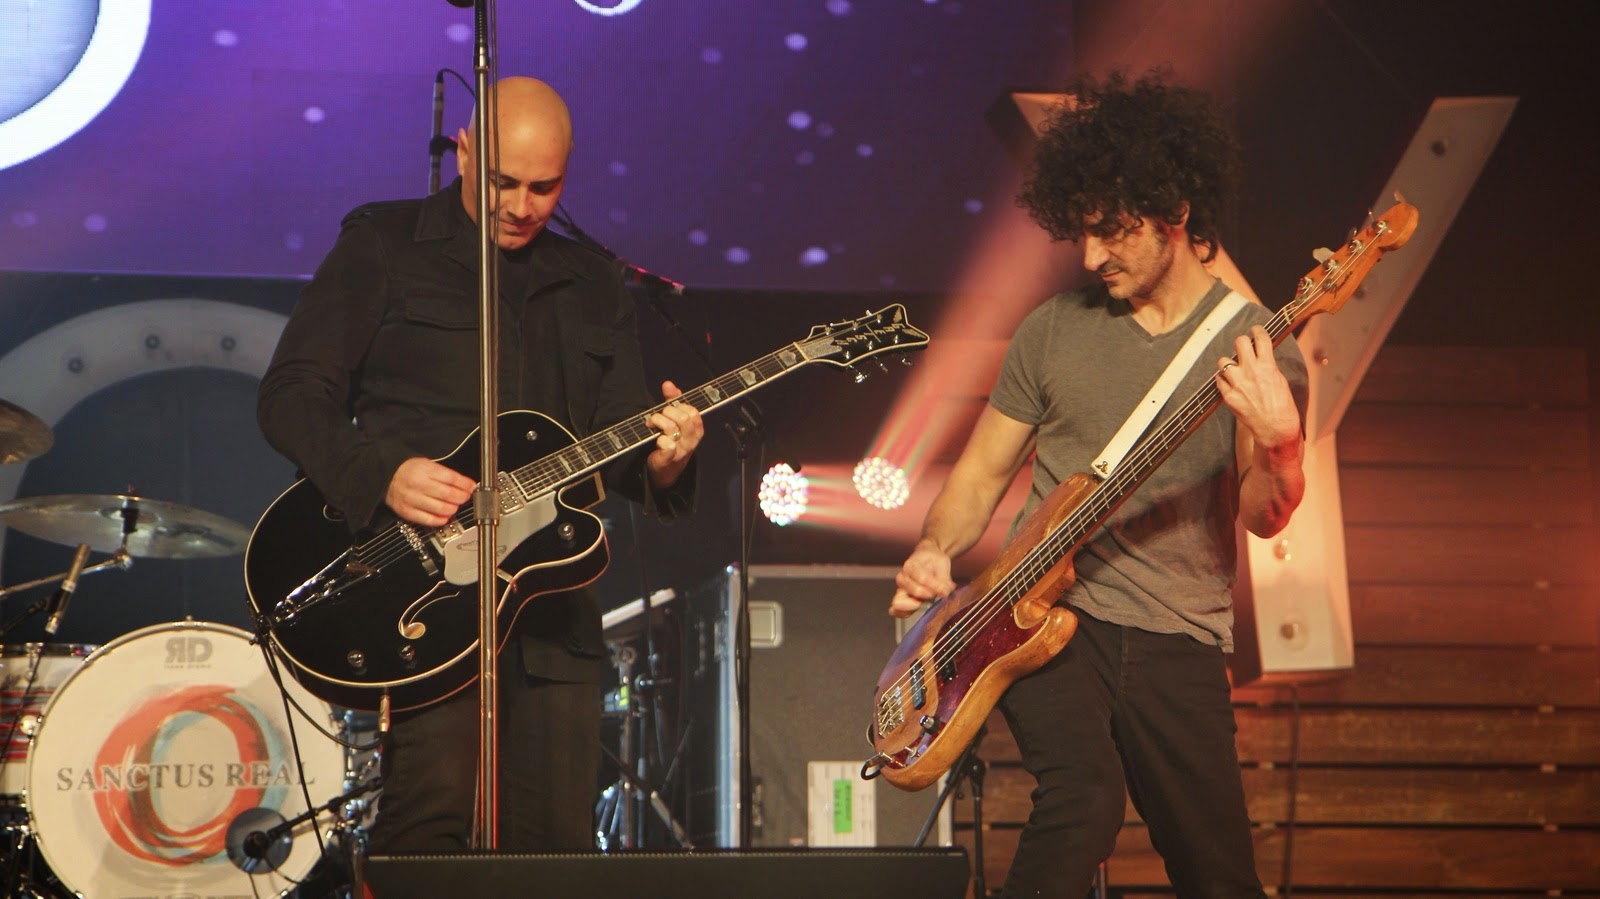 Peter Furler Band - Sun And Shield 2014 live performance with his band